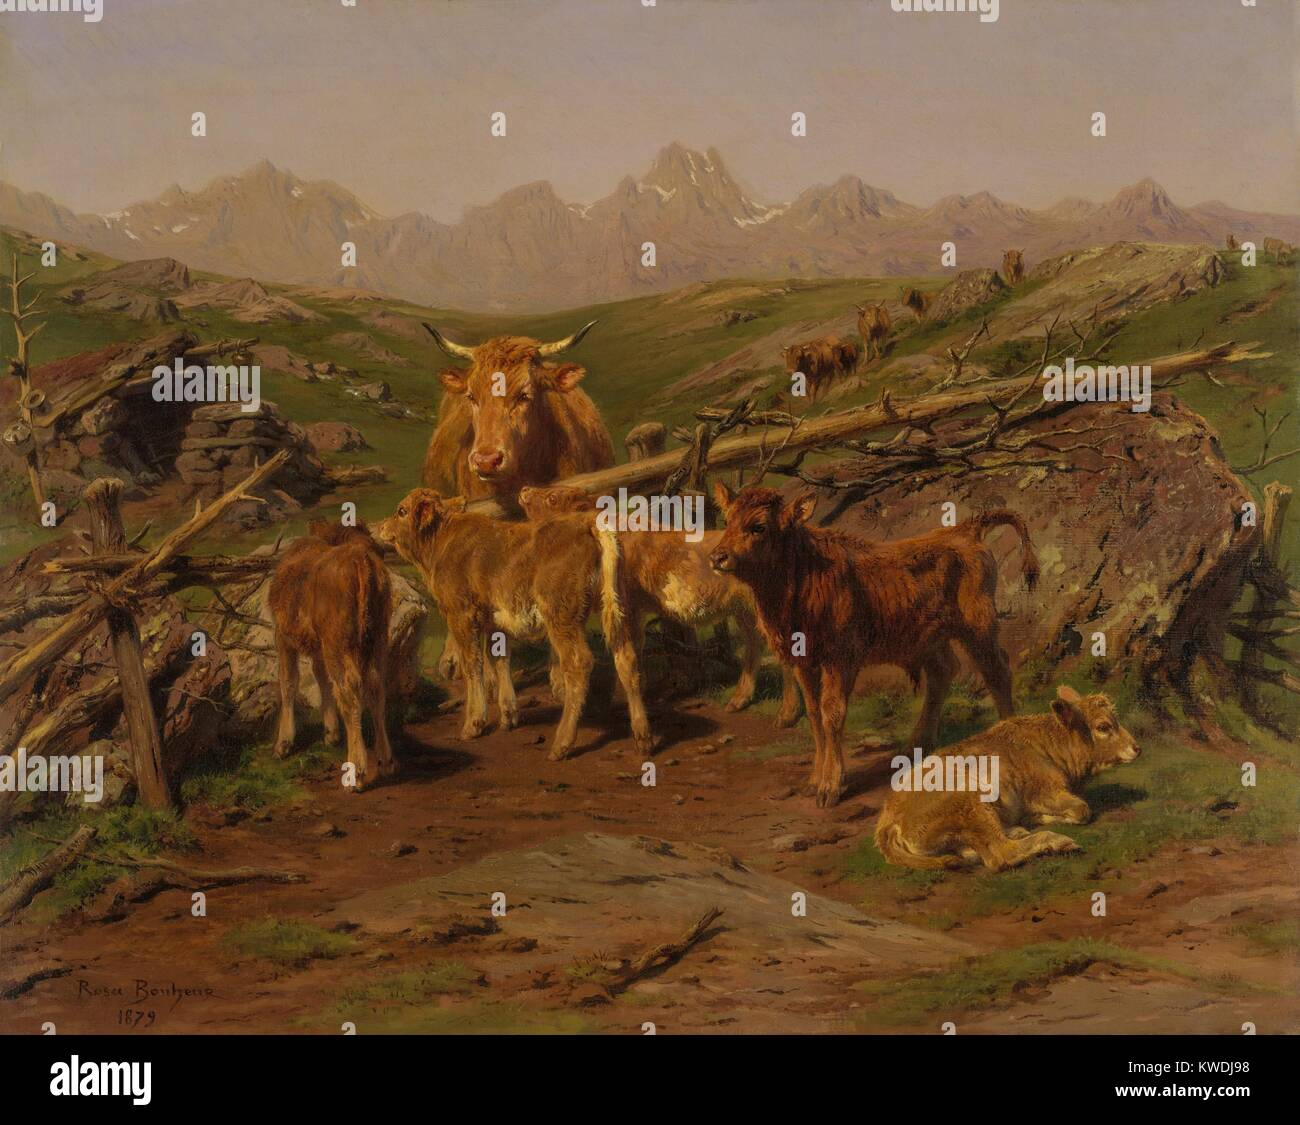 WEANING OF THE CALVES, by Rosa Bonheur, 1879, French painting, oil on canvas. Set in the Pyrenees Mountains, the - Stock Image